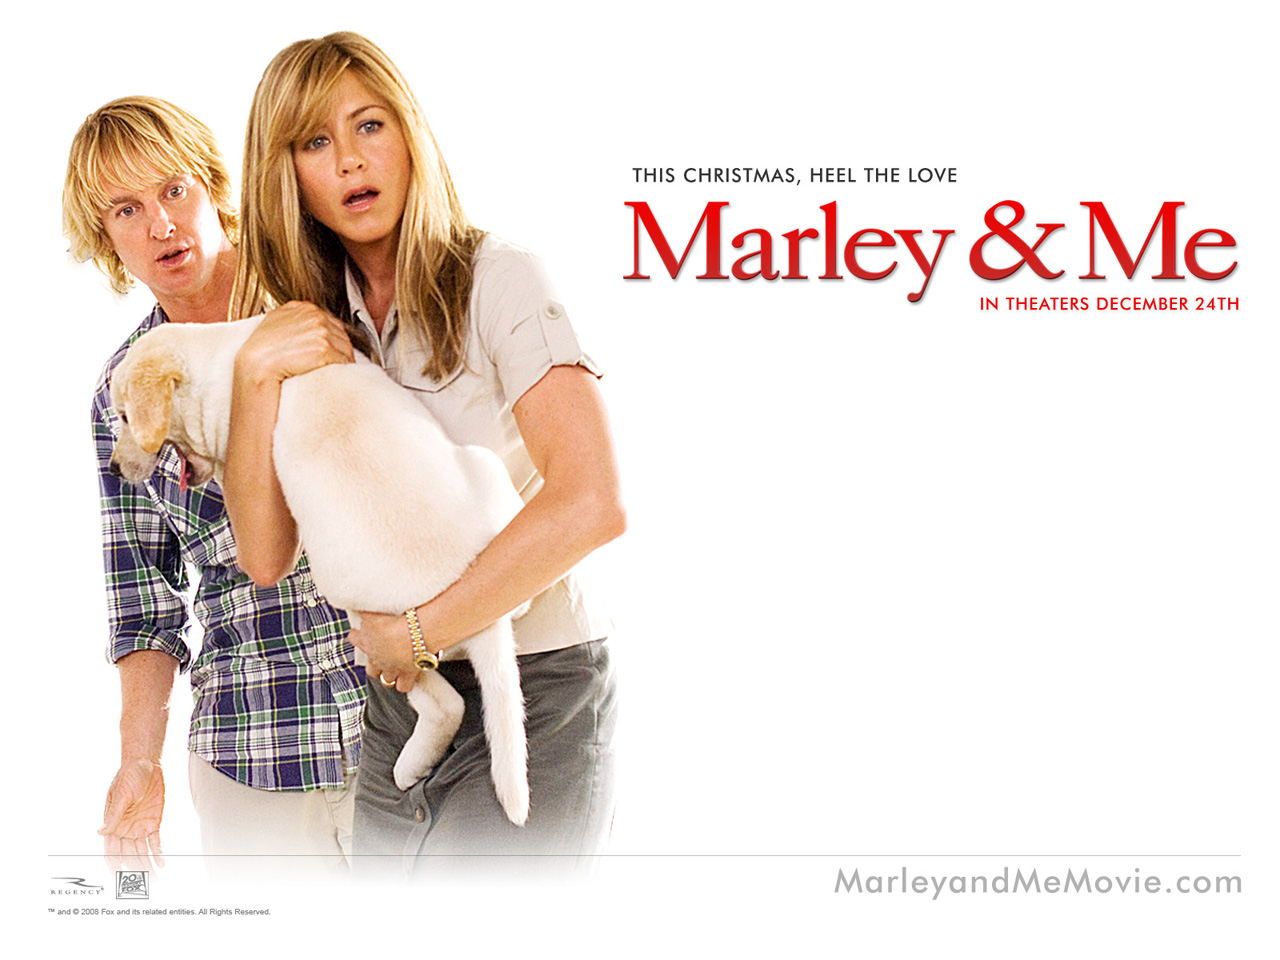 http://3.bp.blogspot.com/-na3P7okq5fA/T0MVkzQCB2I/AAAAAAAADsc/aVA_26GzDJ0/s1600/Jennifer_Aniston_in_Marley_and_Me_Wallpaper_1_1024.jpg